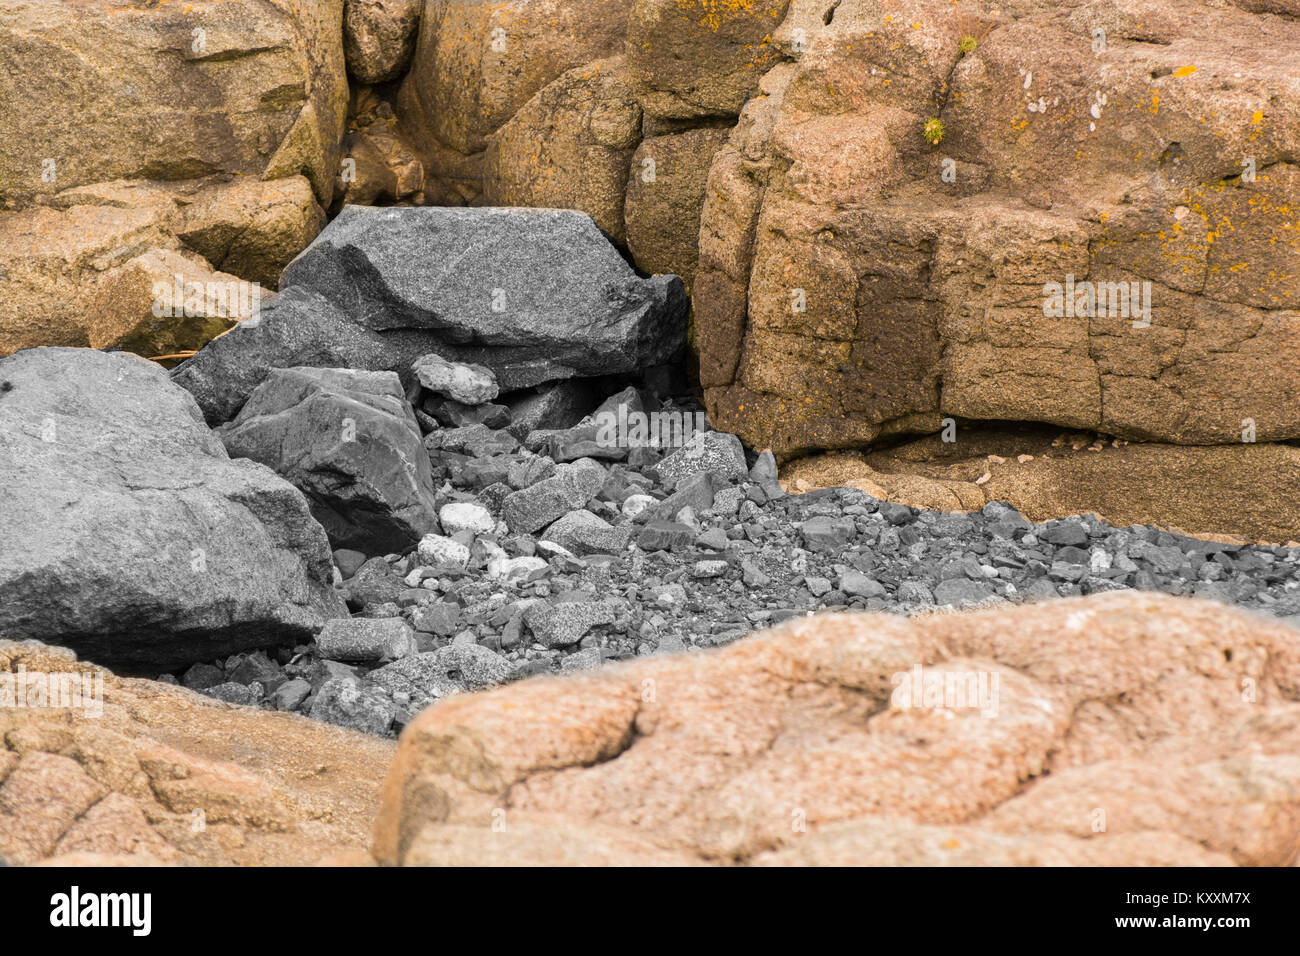 Seaside Rocks at Portrush Co.Antrim N.Ireland - Stock Image